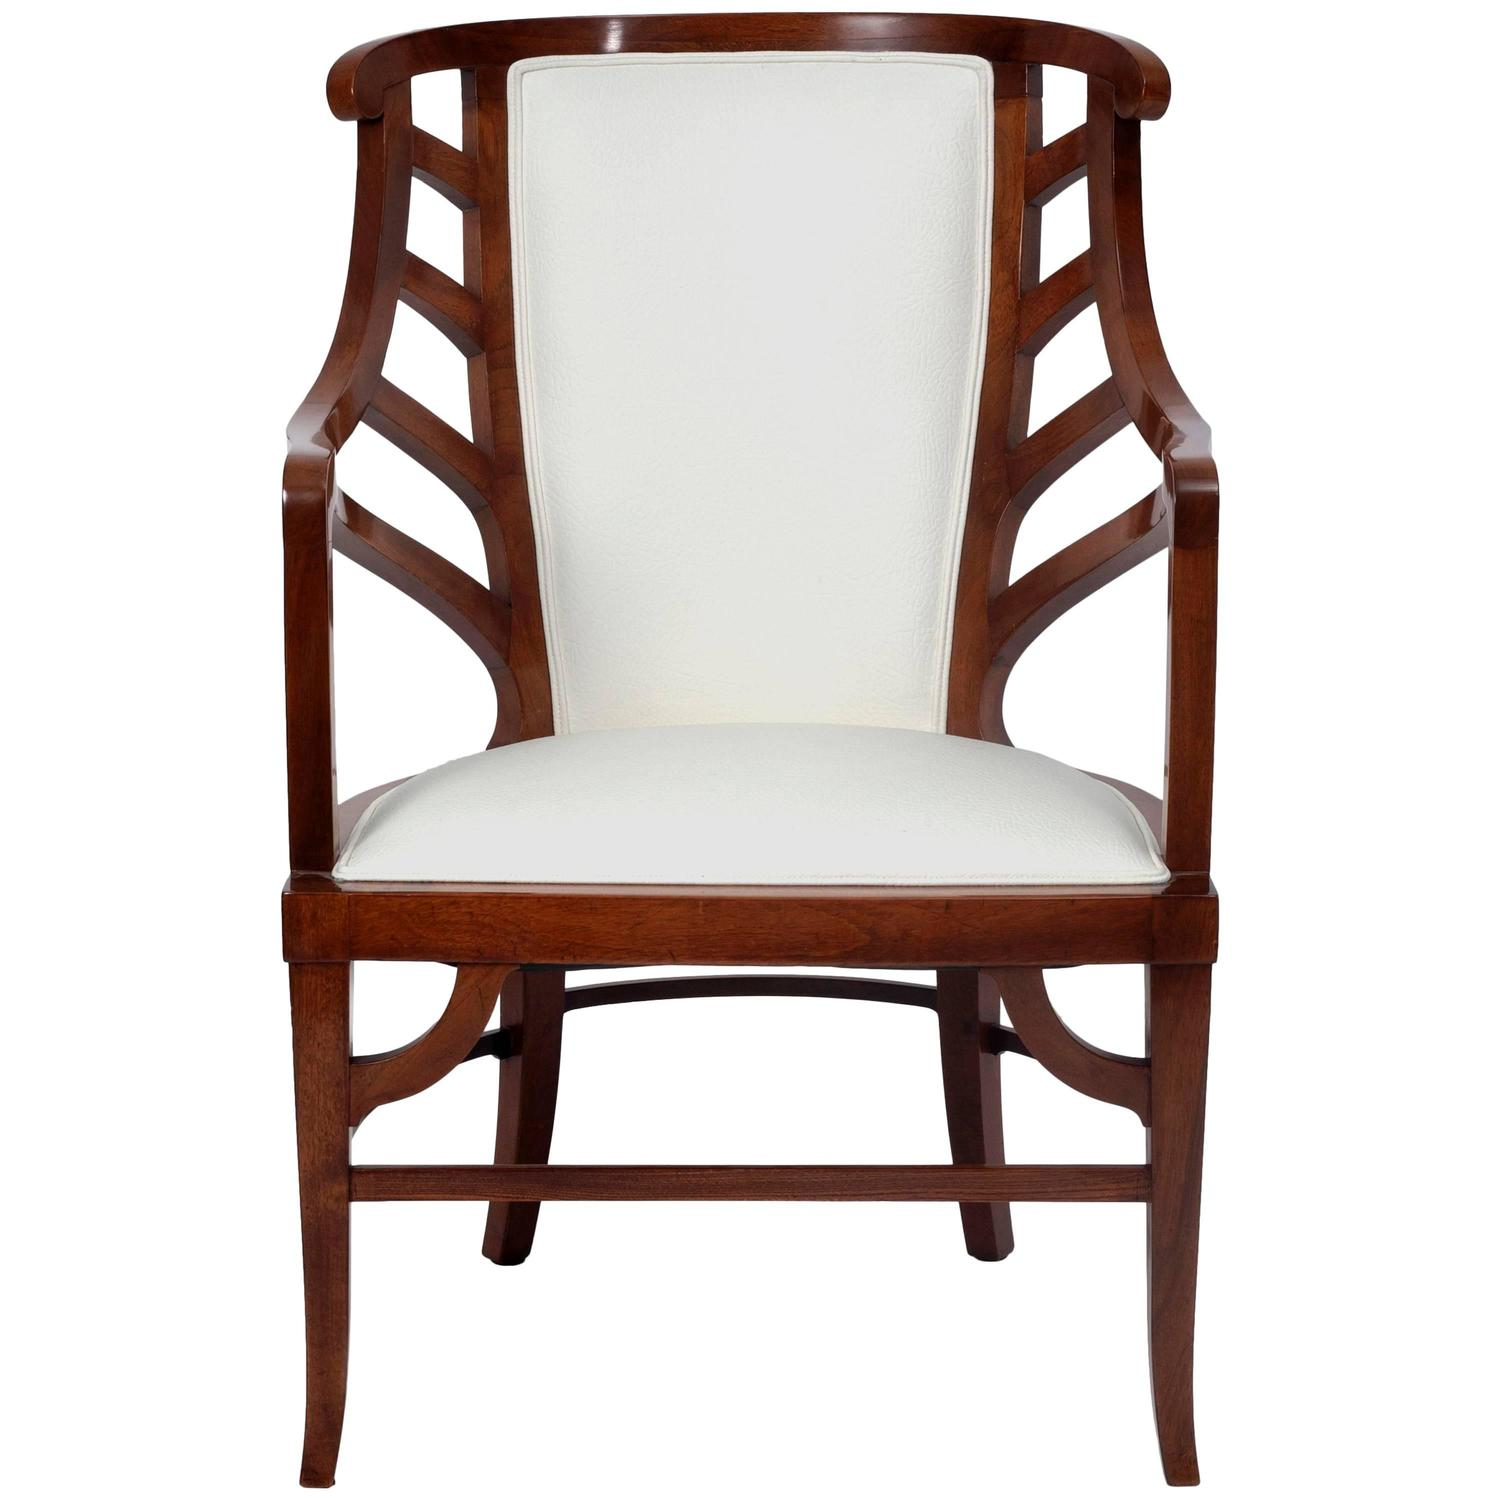 Walnut Art Nouveau Armchair In The Manner Of Henry Van De